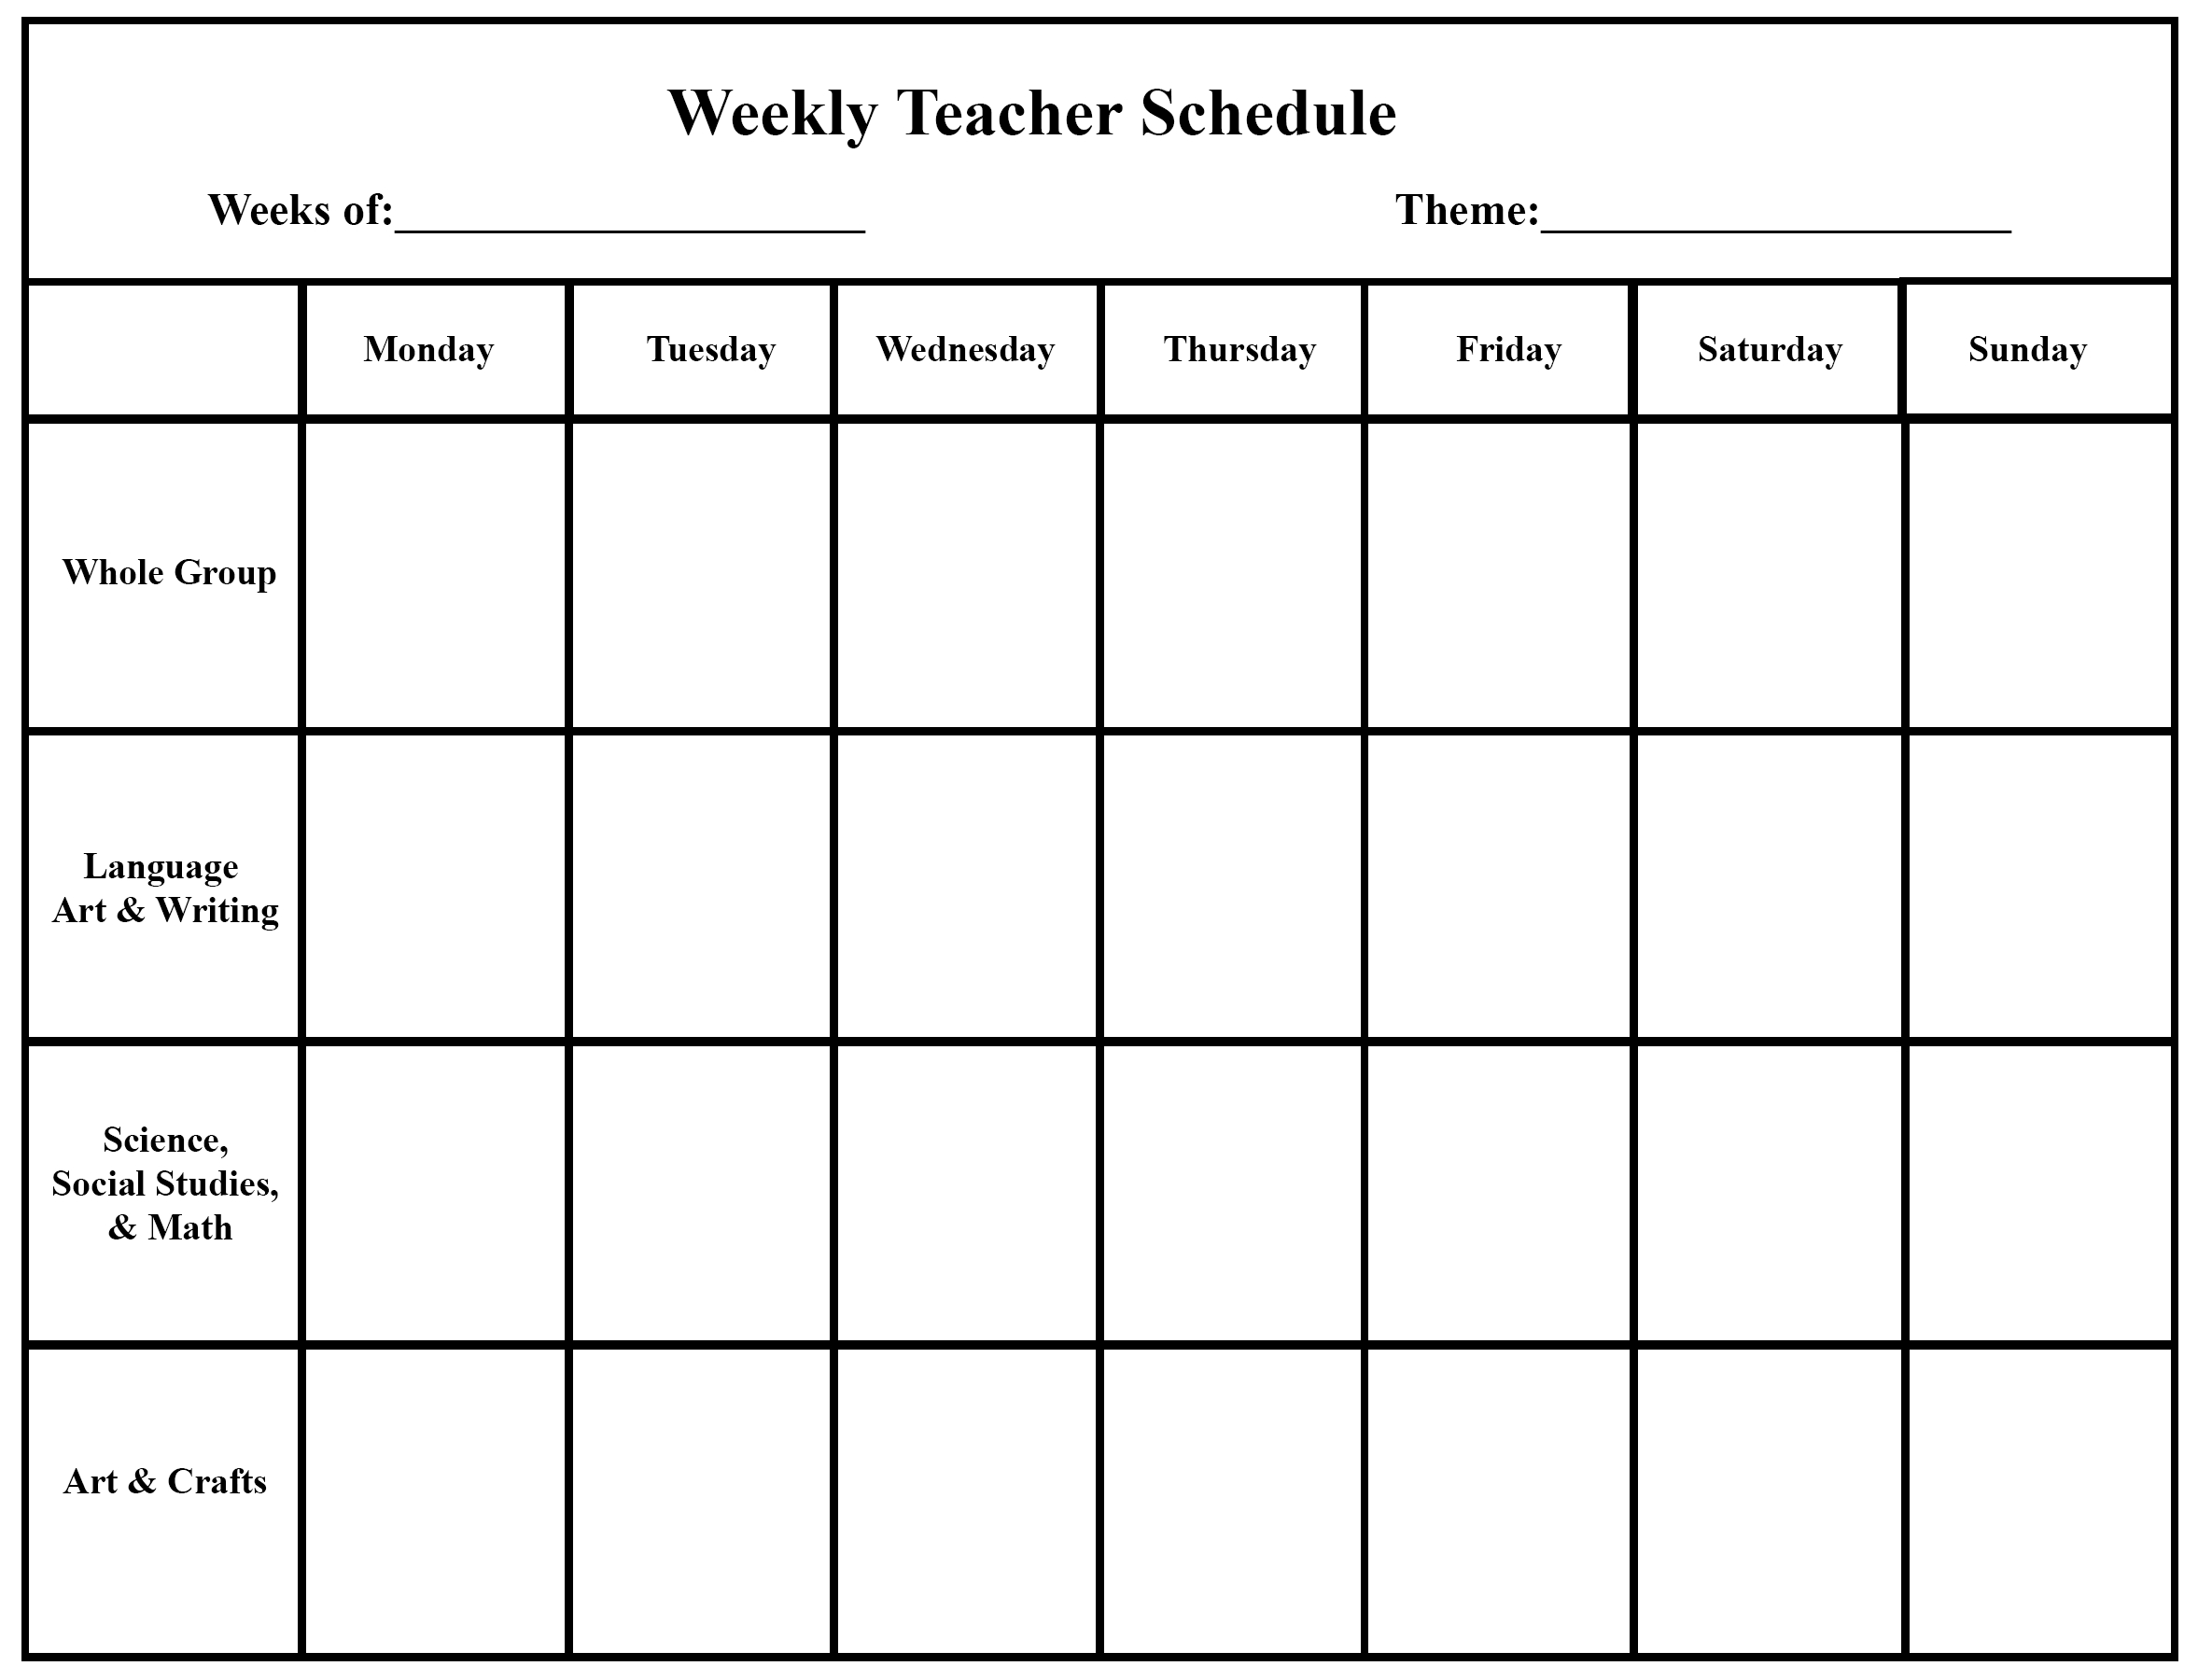 Weekly Schedule Template 4 Week Planner Template Word